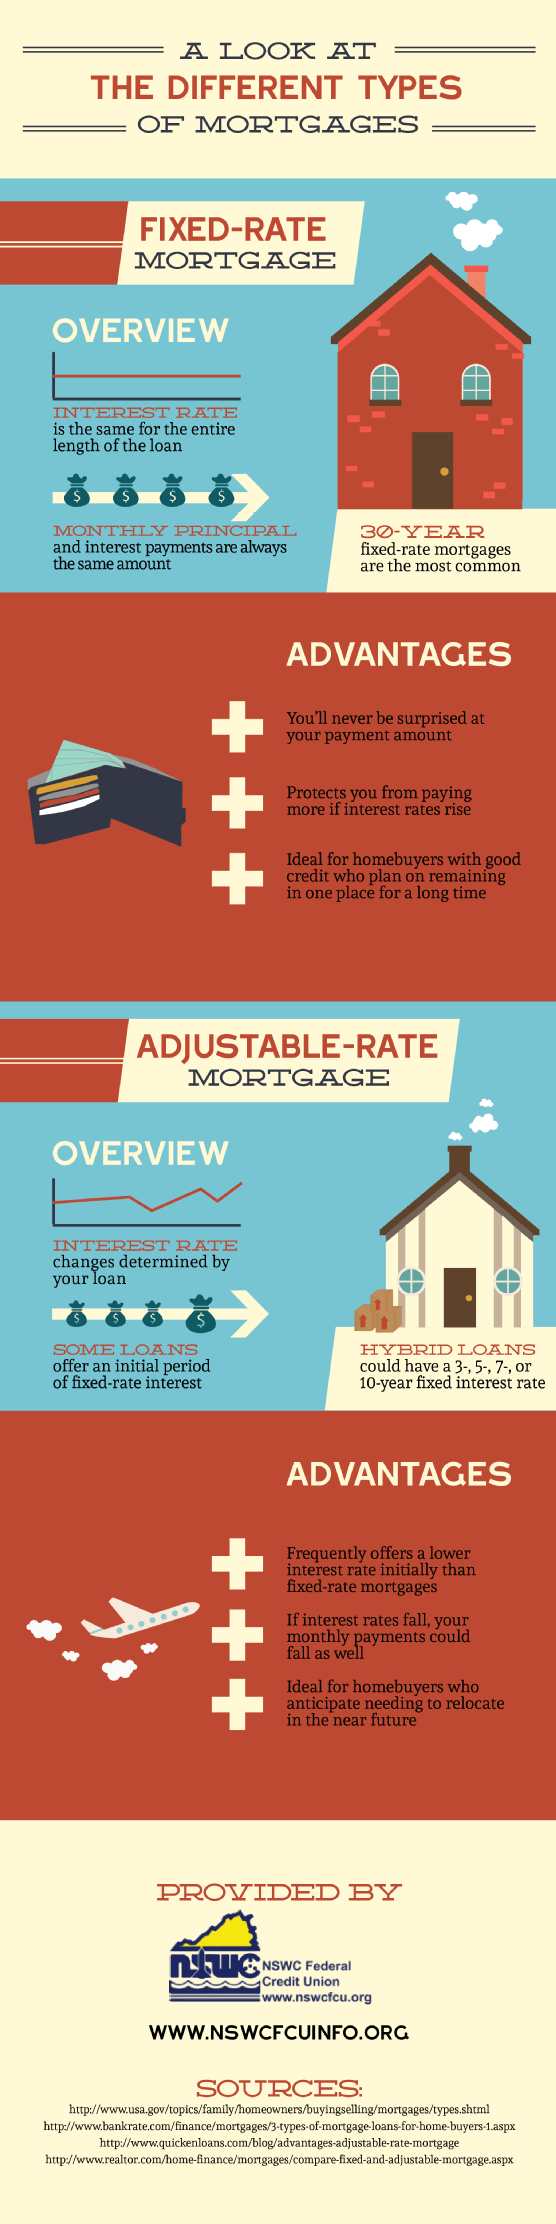 a-look-at-the-different-types-of-mortgages_52579f2cefc74